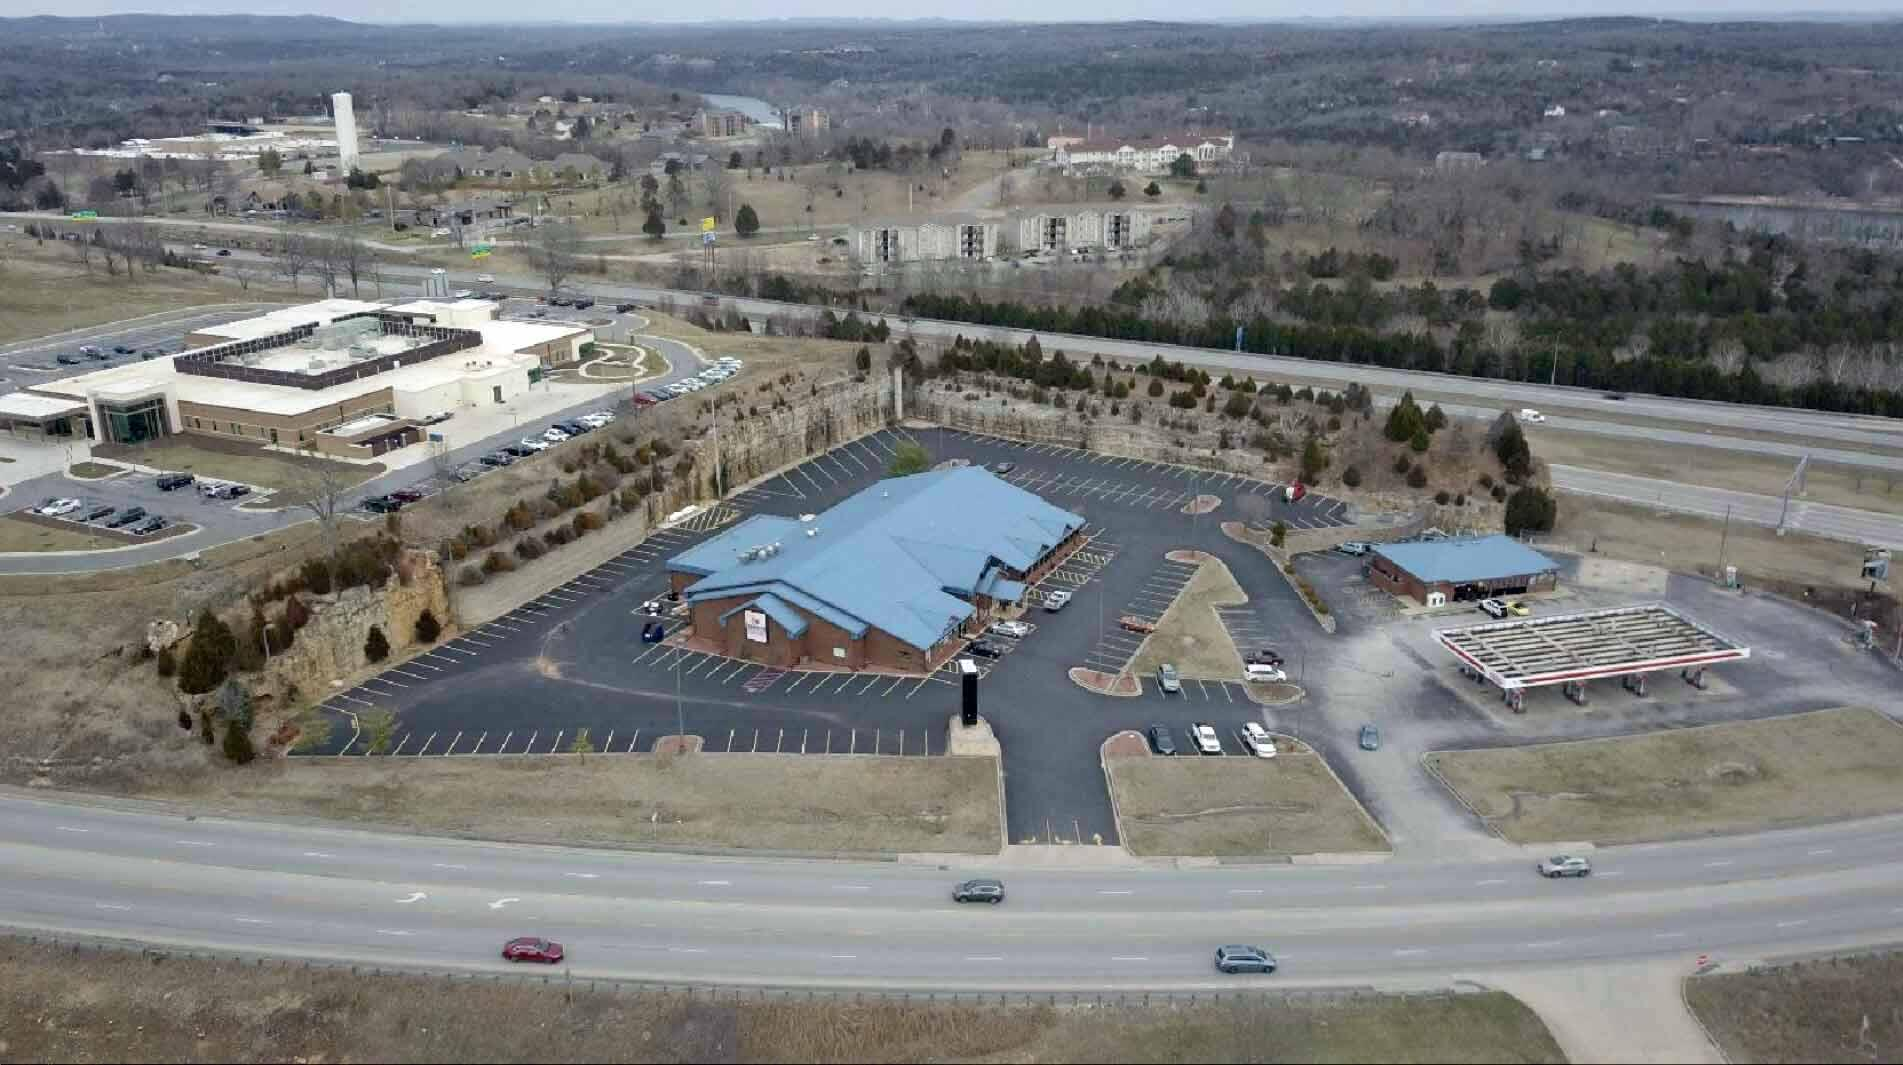 440 State Hwy Branson, MO 65616